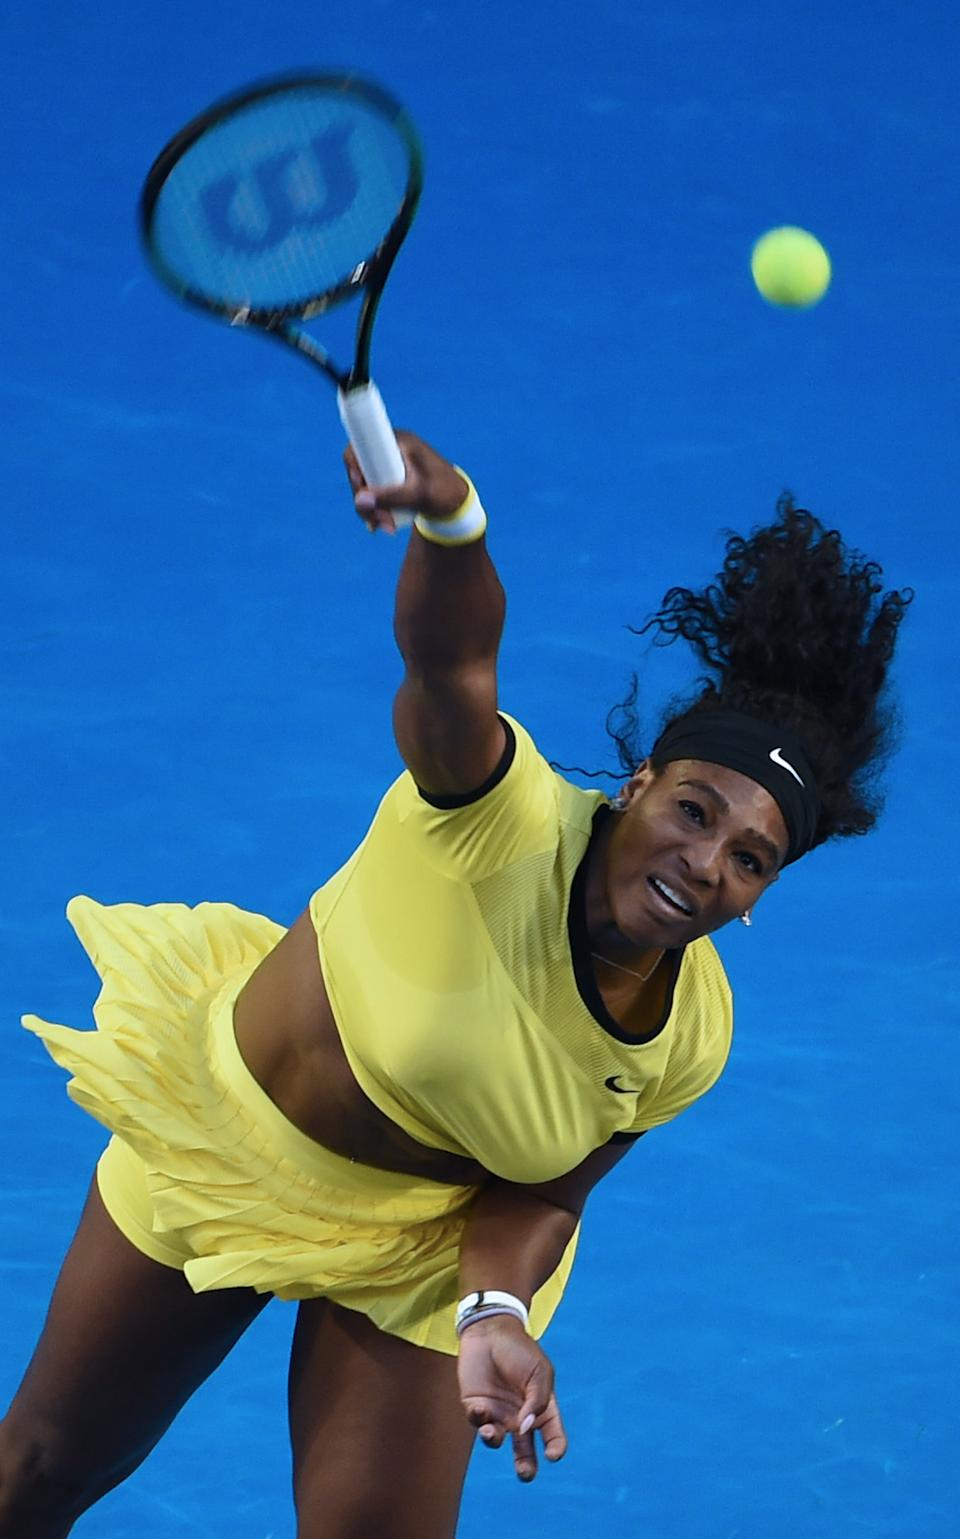 Tennis - 'I'm not a robot', says Serena after shock defeat